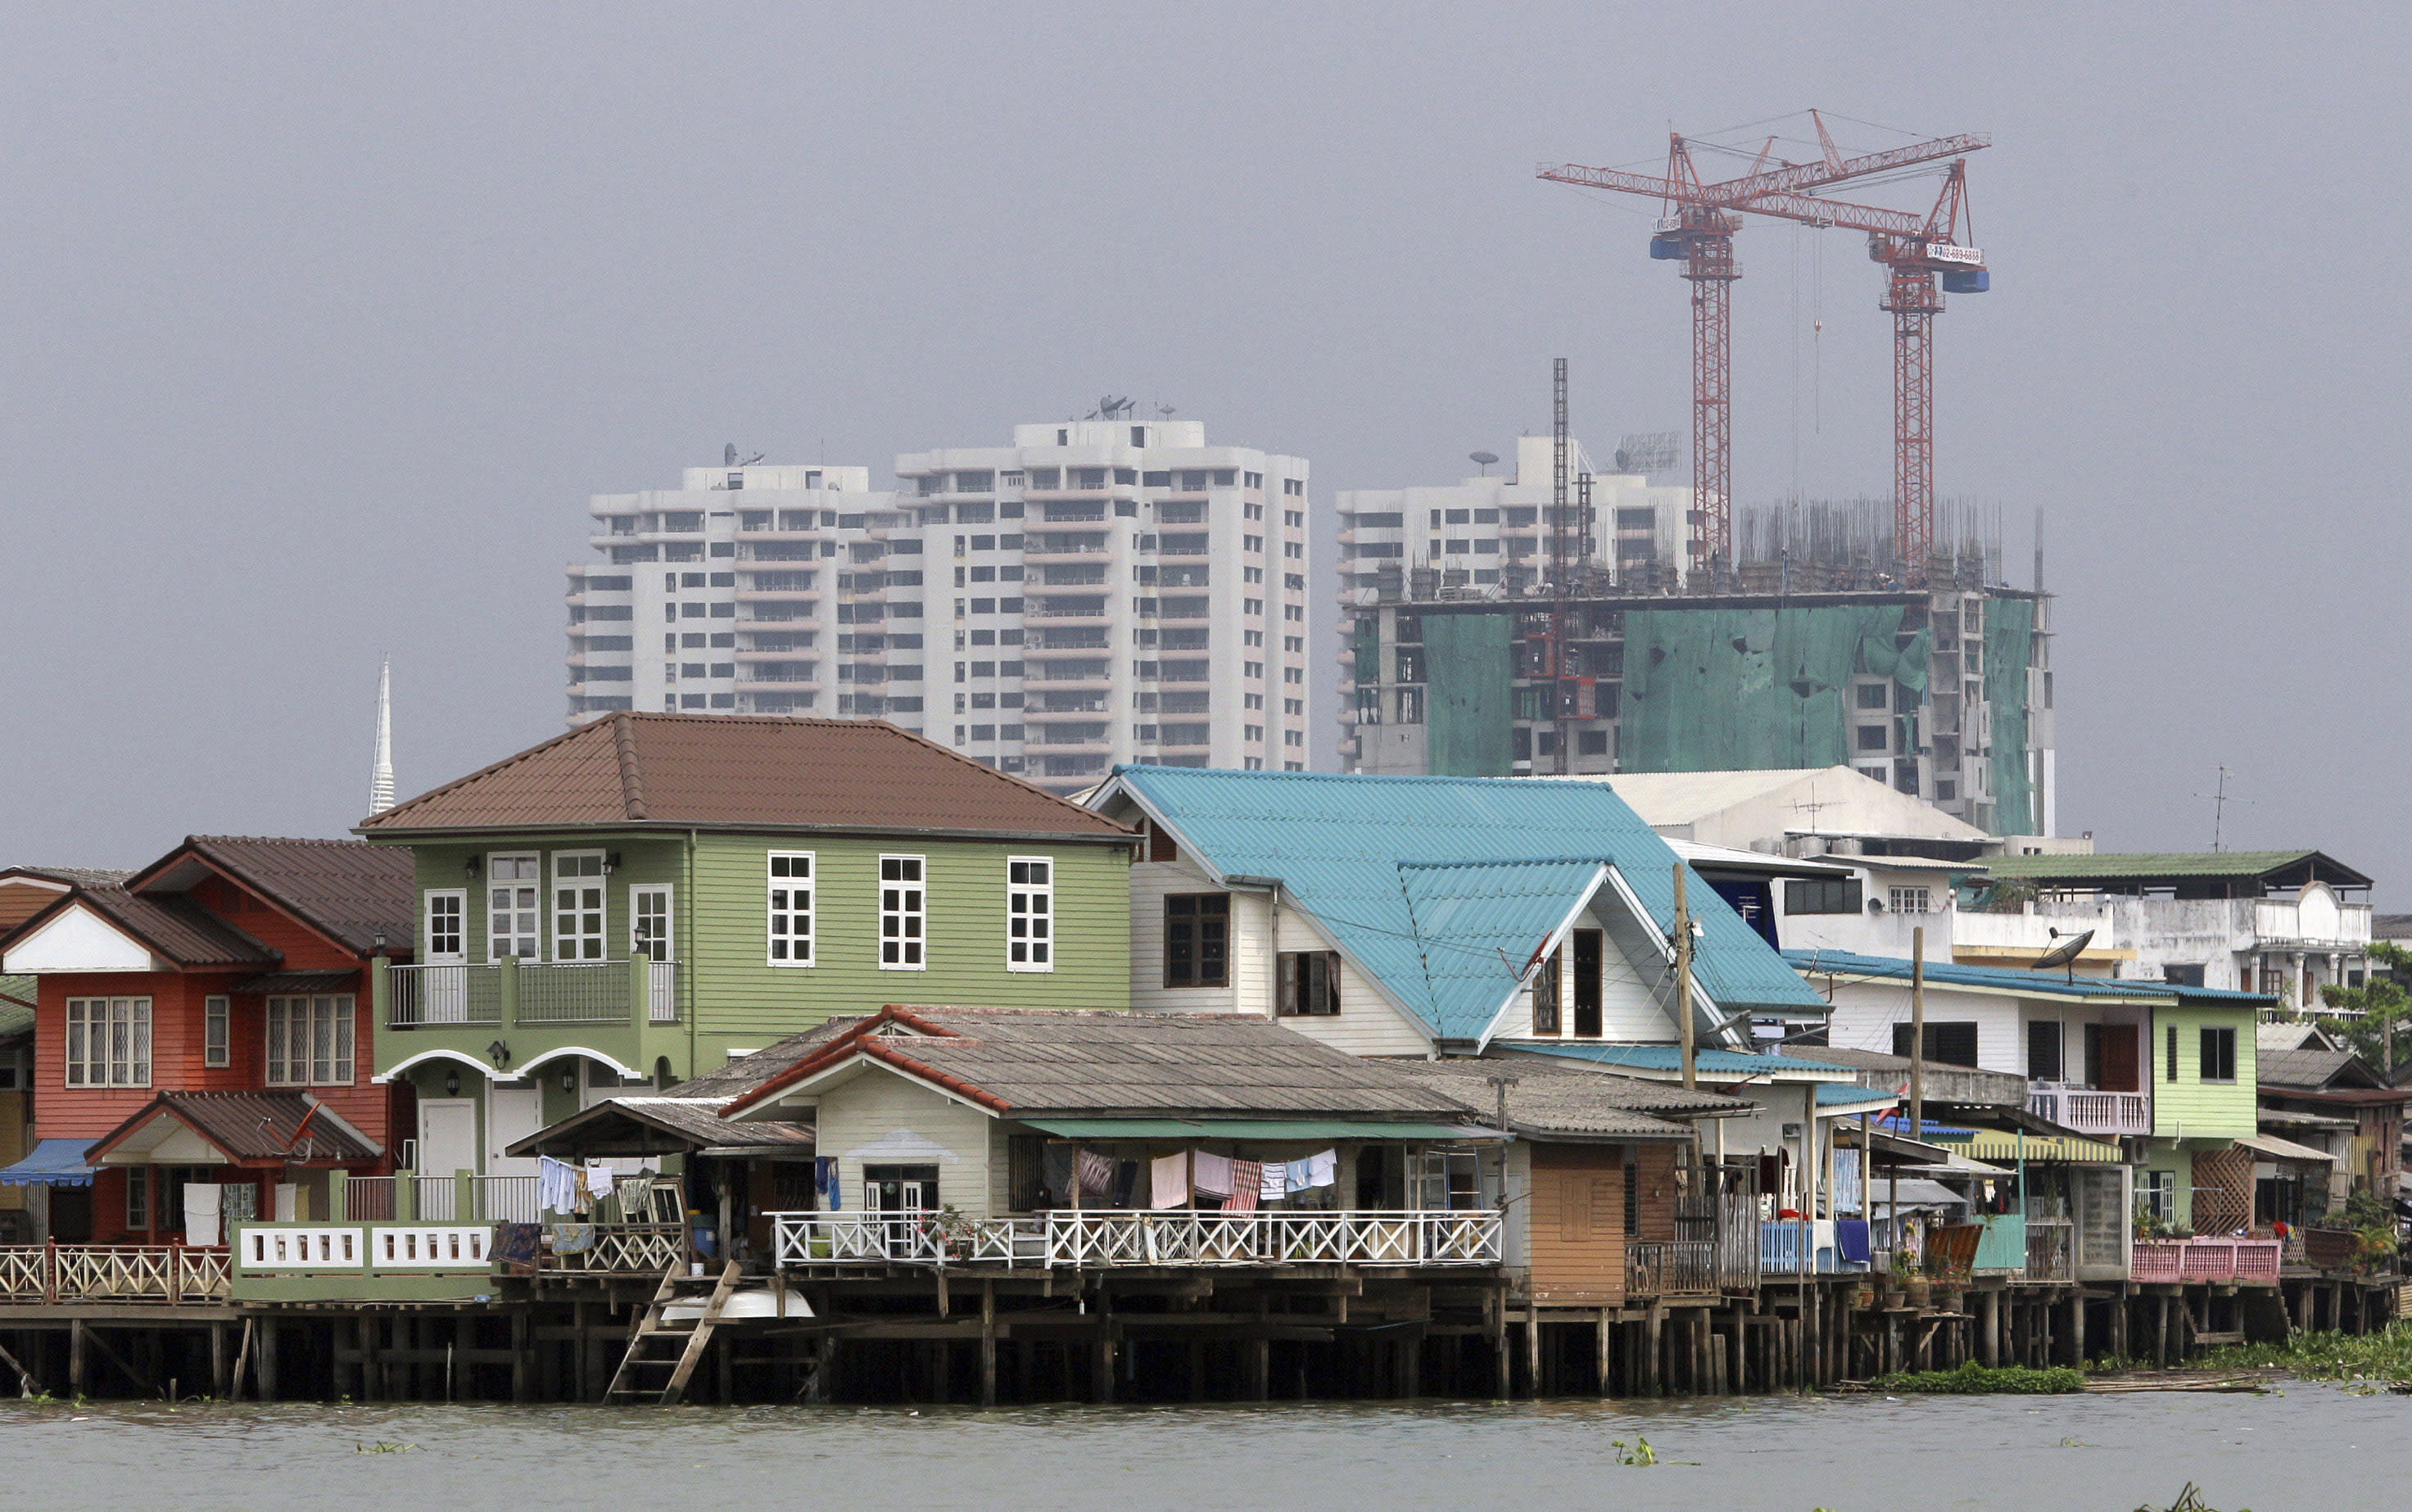 FILE - In this March 26, 2012 file photo, residences on stilts sit along the Chao Phraya River with a construction site in the background in Bangkok, Thailand. Sea level rise projections show Bangkok could be at risk of inundation in 100 years unless preventive measures are taken. (AP Photo/Sakchai Lalit, File)